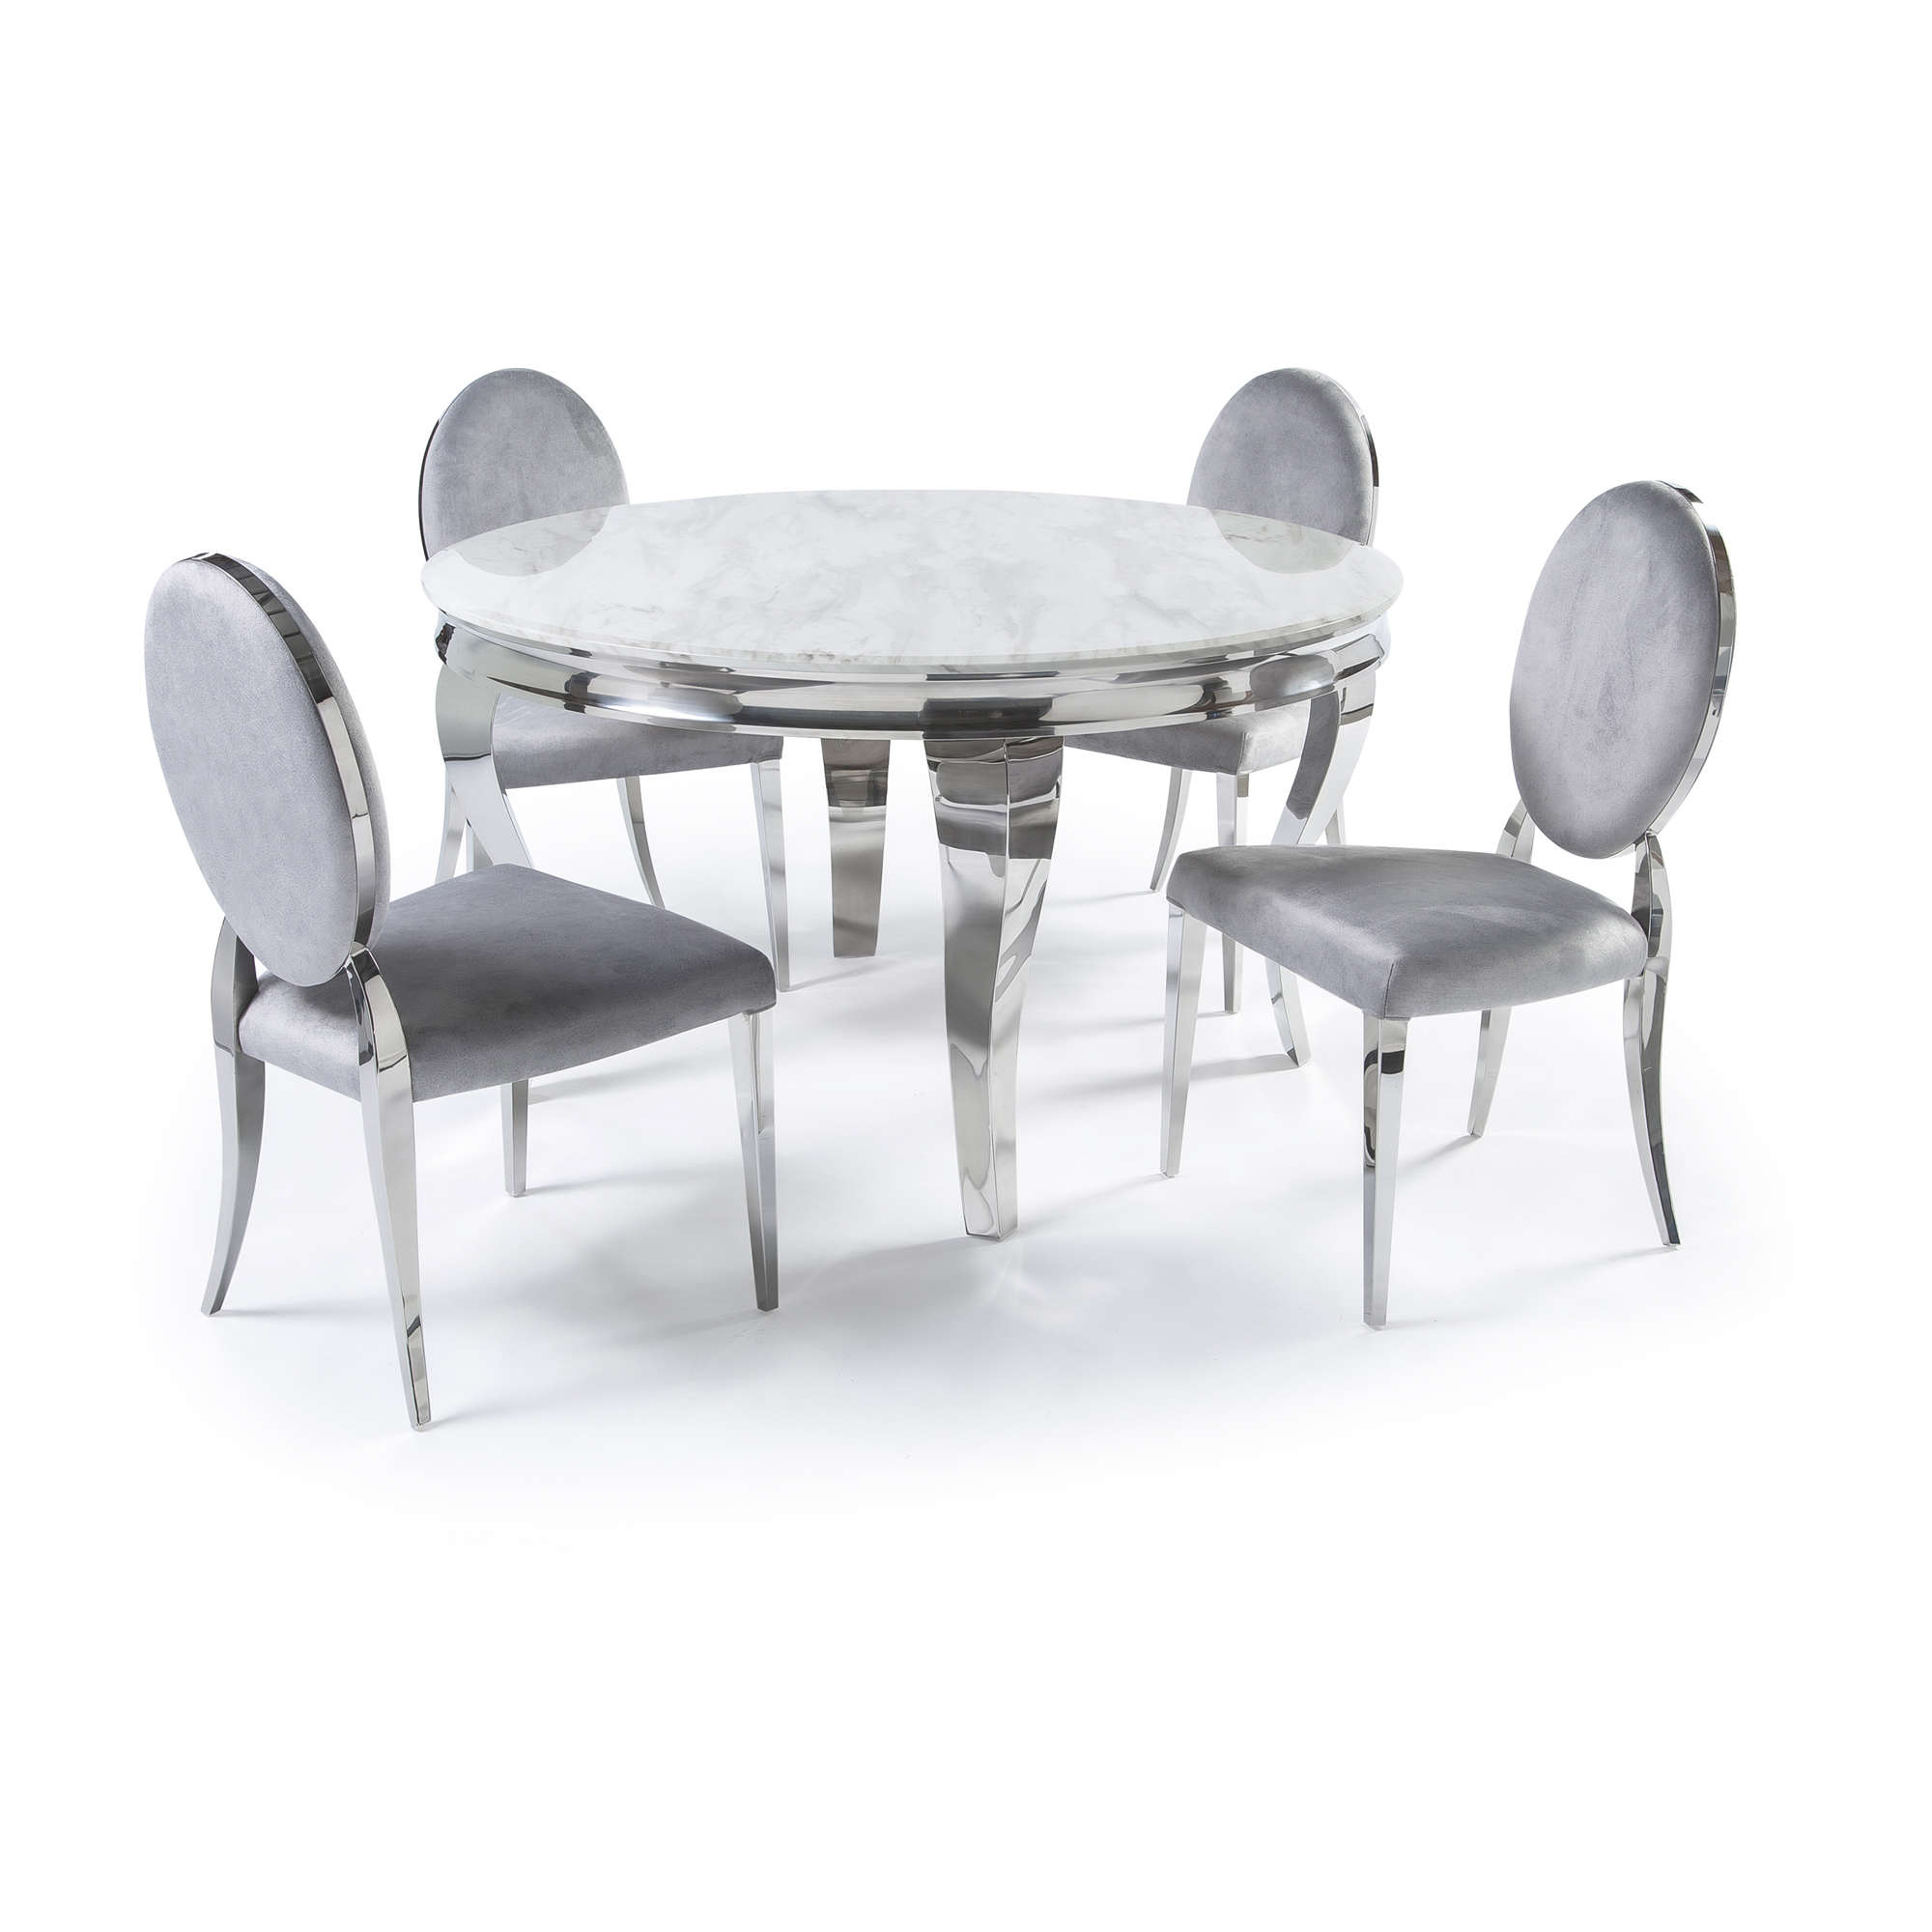 Circular Polished Steel Dining White Marble Table Set Grey For Well Liked Solid Wood Circular Dining Tables White (View 22 of 25)